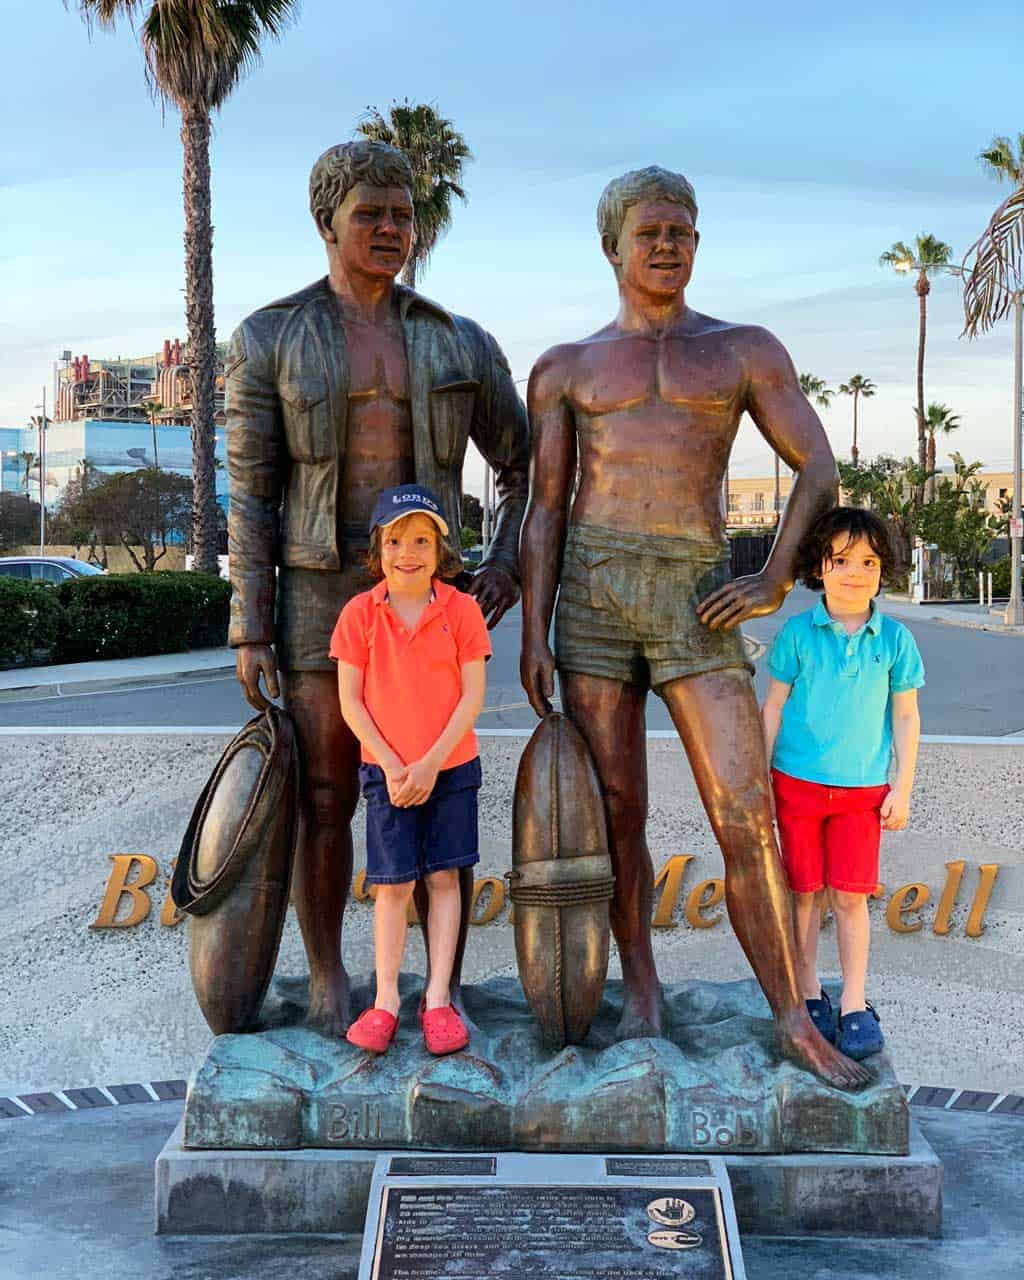 The statue of Bill and Bob Meistrell — inventors of the wet-suit